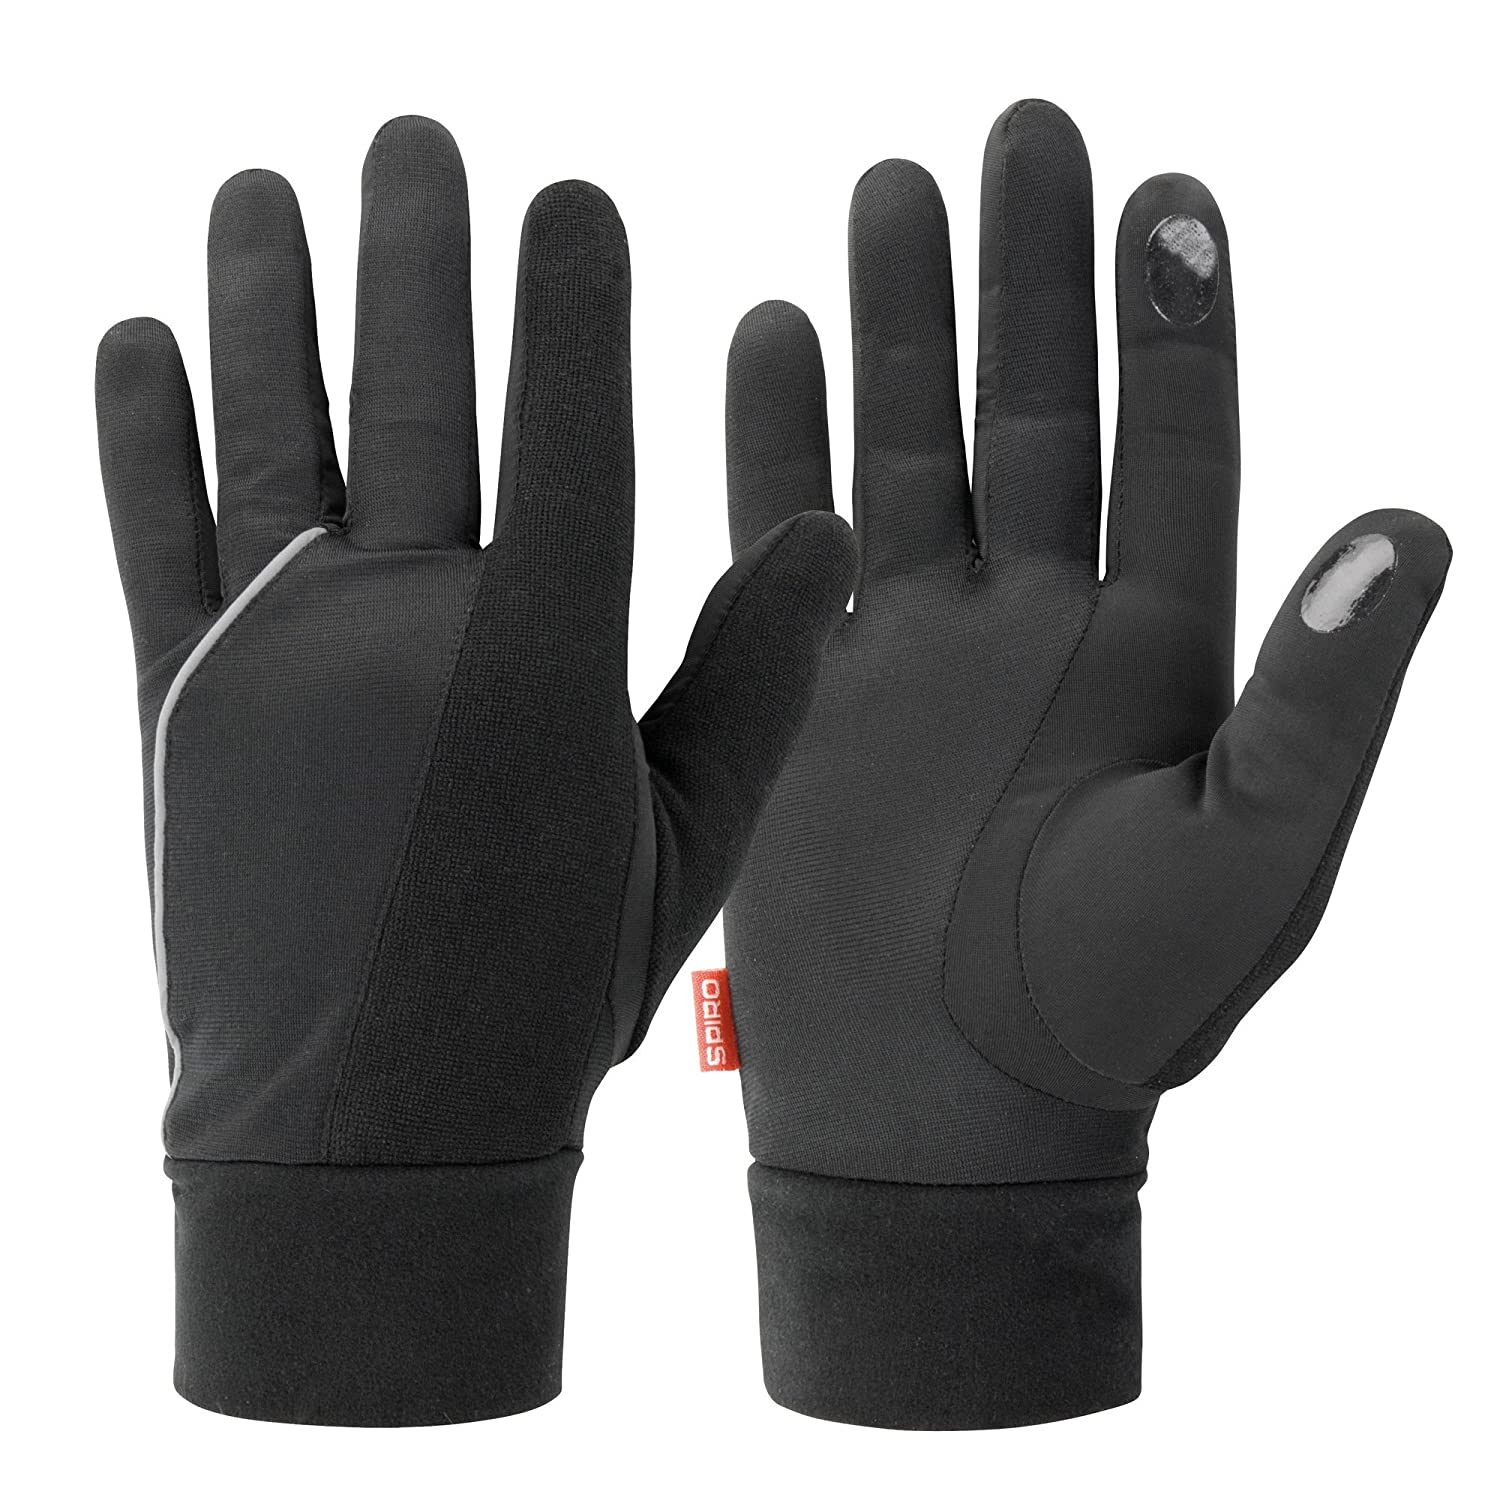 Spiro Adults Unisex Elite Running Gloves (L) (Black) UTRW4767_1